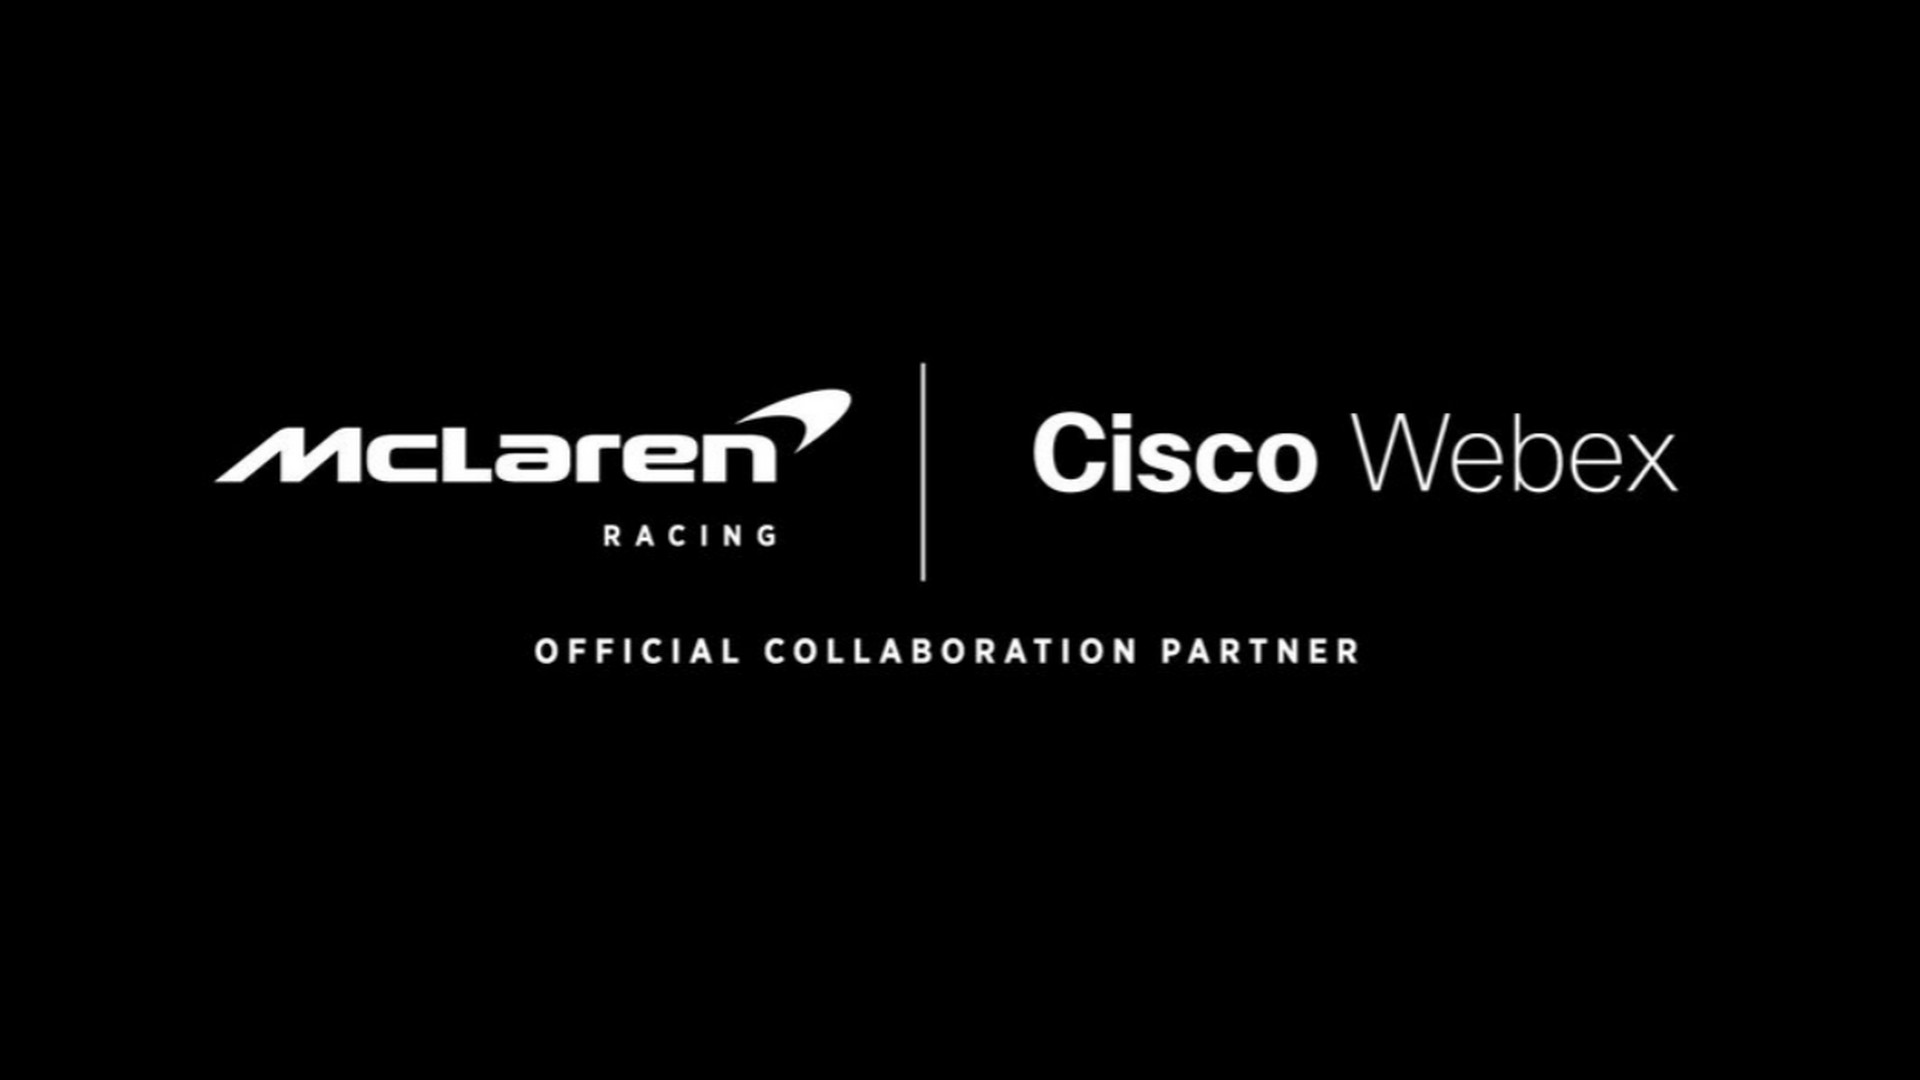 Cisco Webex x McLaren Racing (Formule 1) 2021